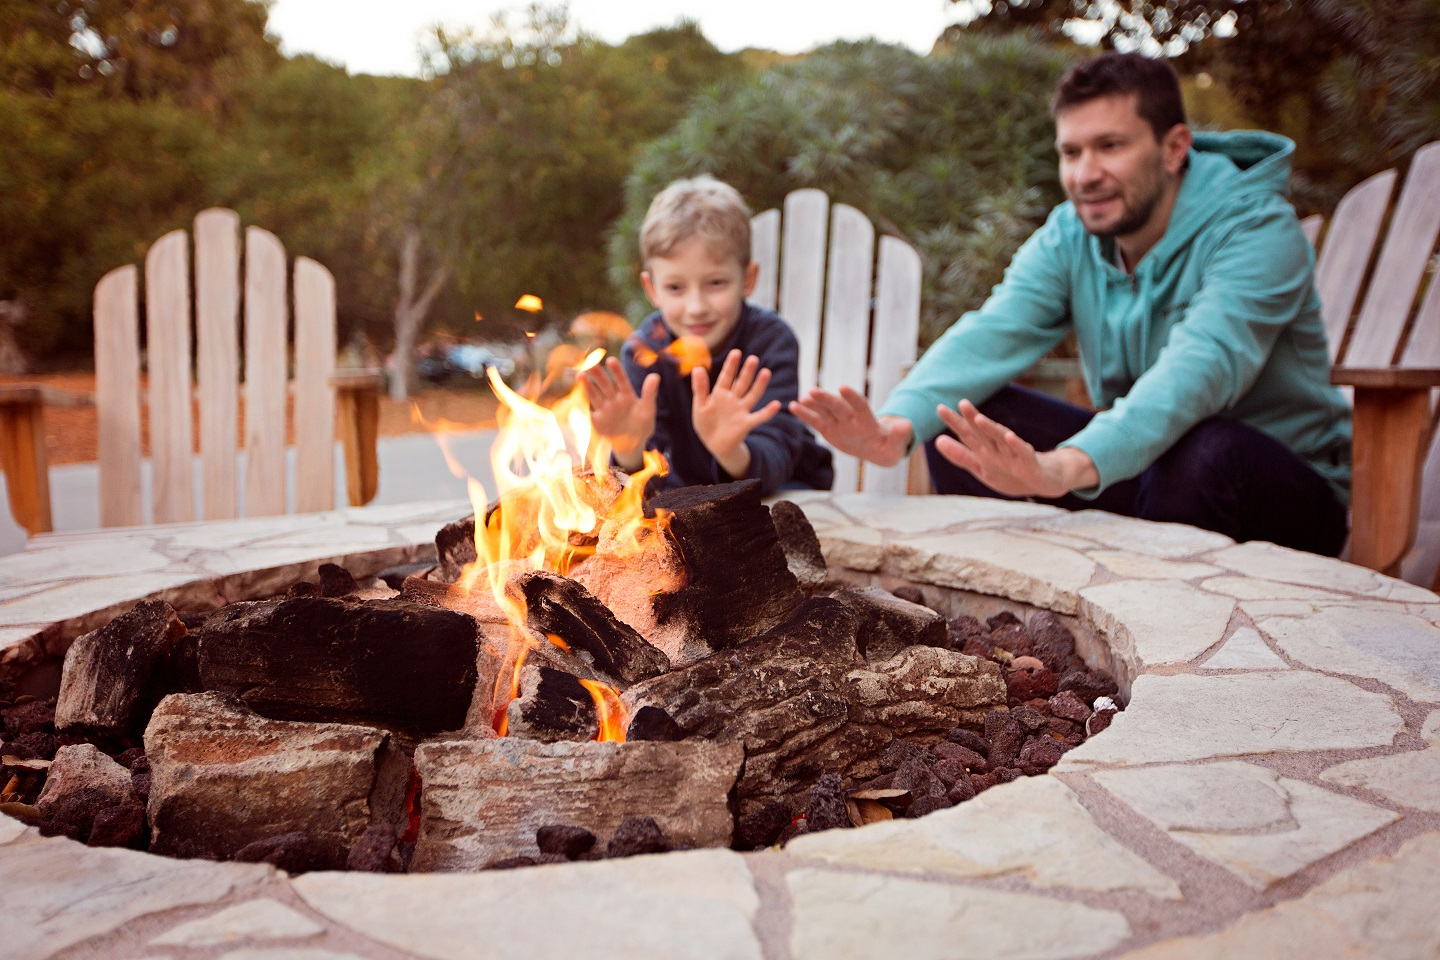 open outdoor fireplace with man and little boy warming their hands, sitting behind it.